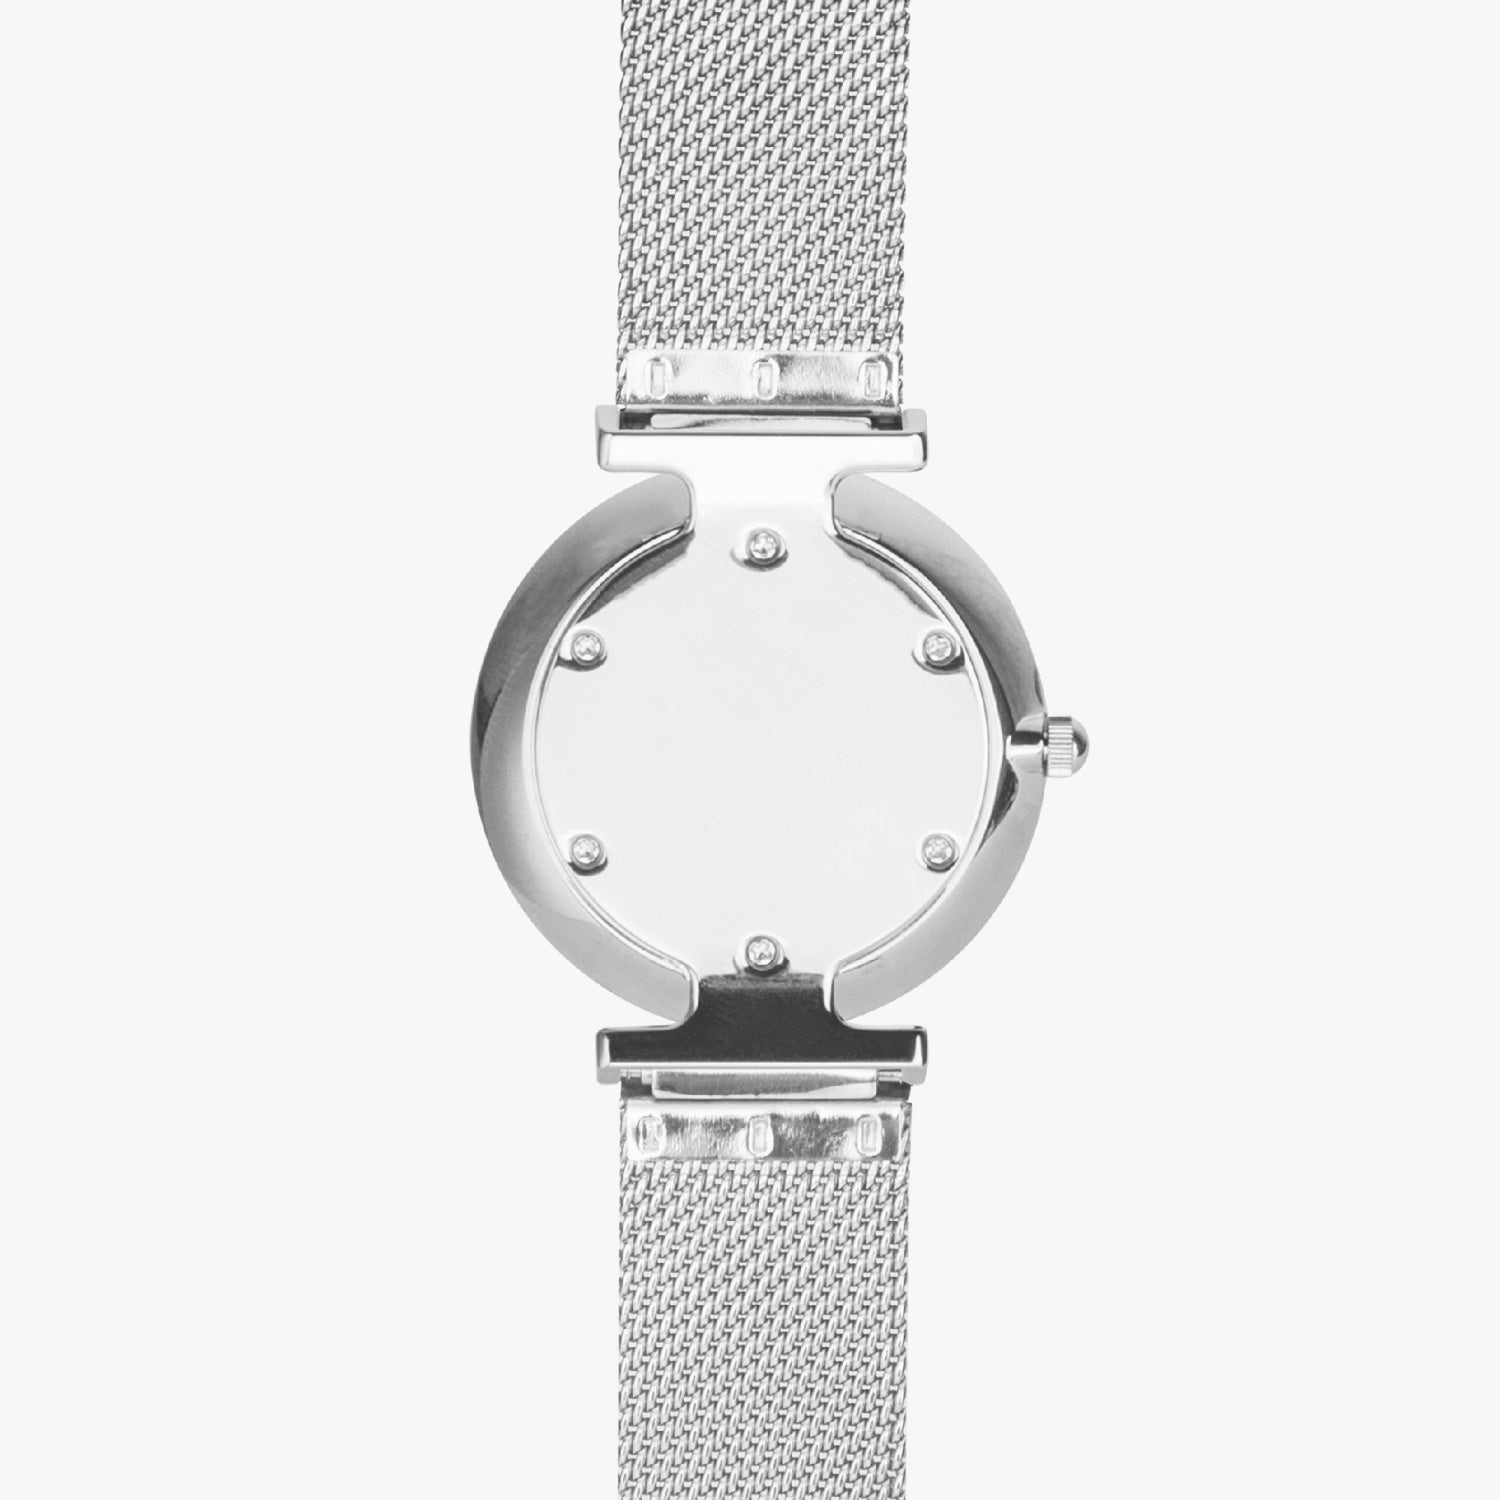 Arabic Music Style Ultra-Thin Watch By BenJoy